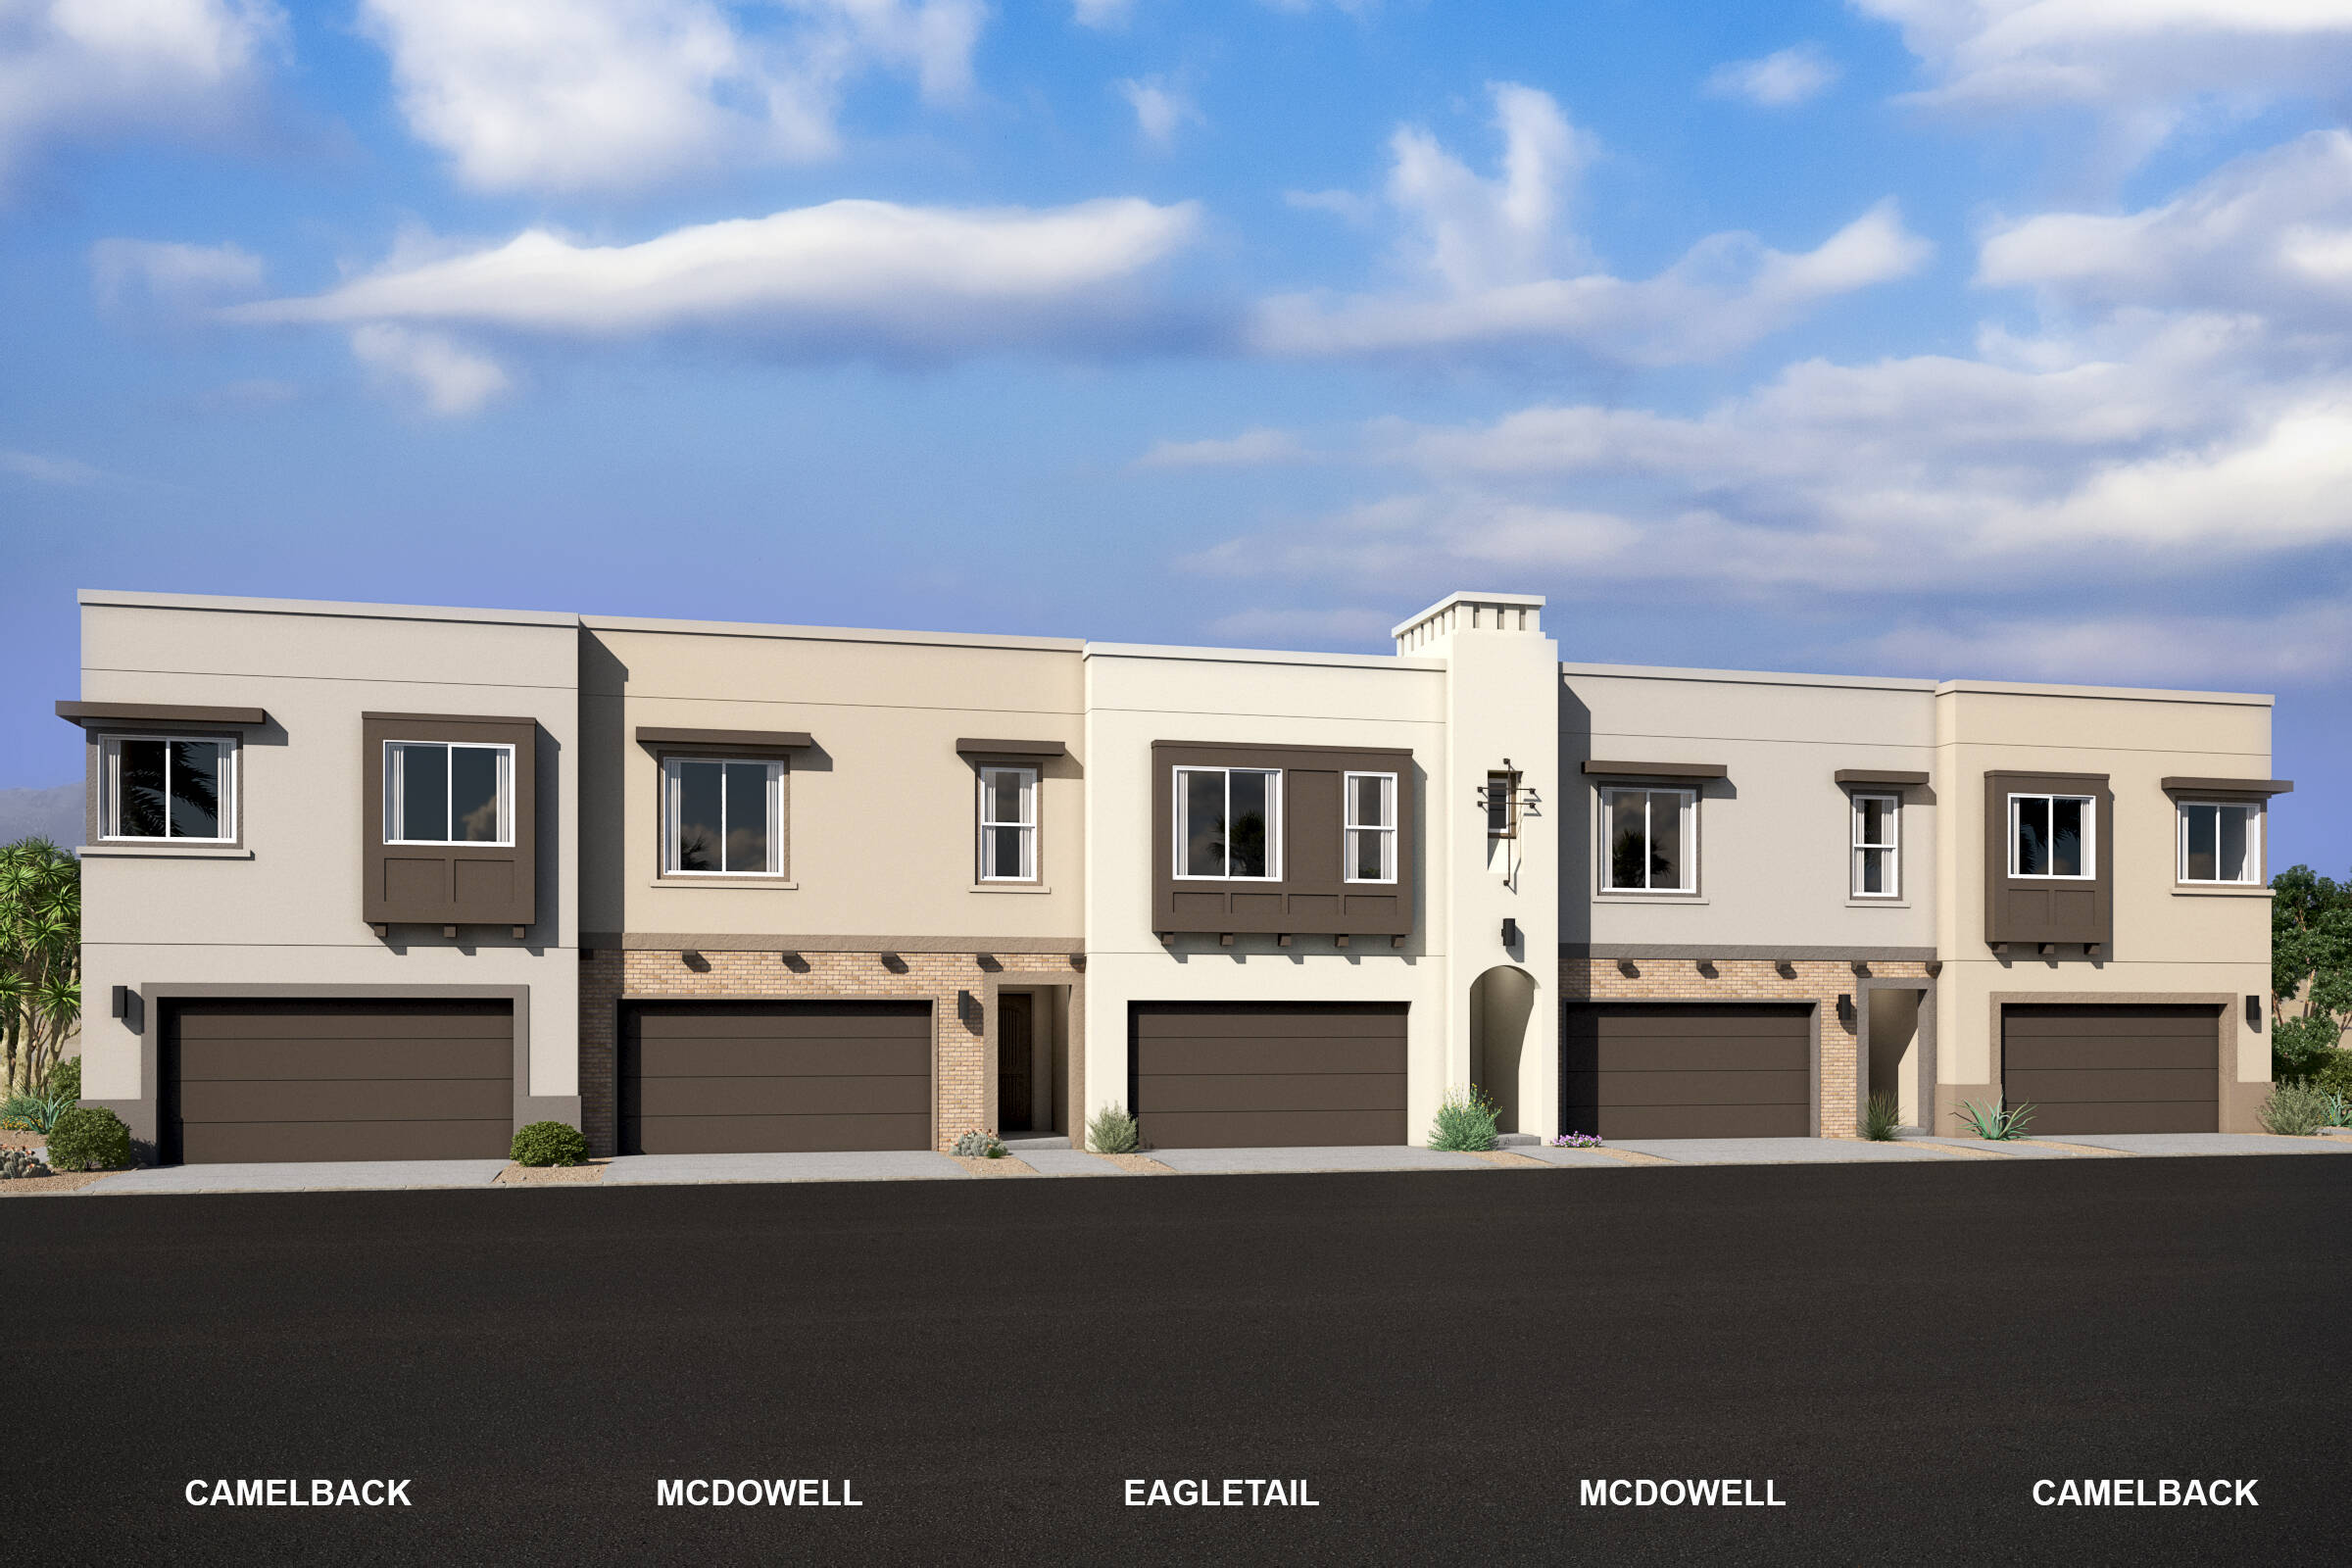 pinnacle at silverstone new scottsdale townhomes 5 plex a